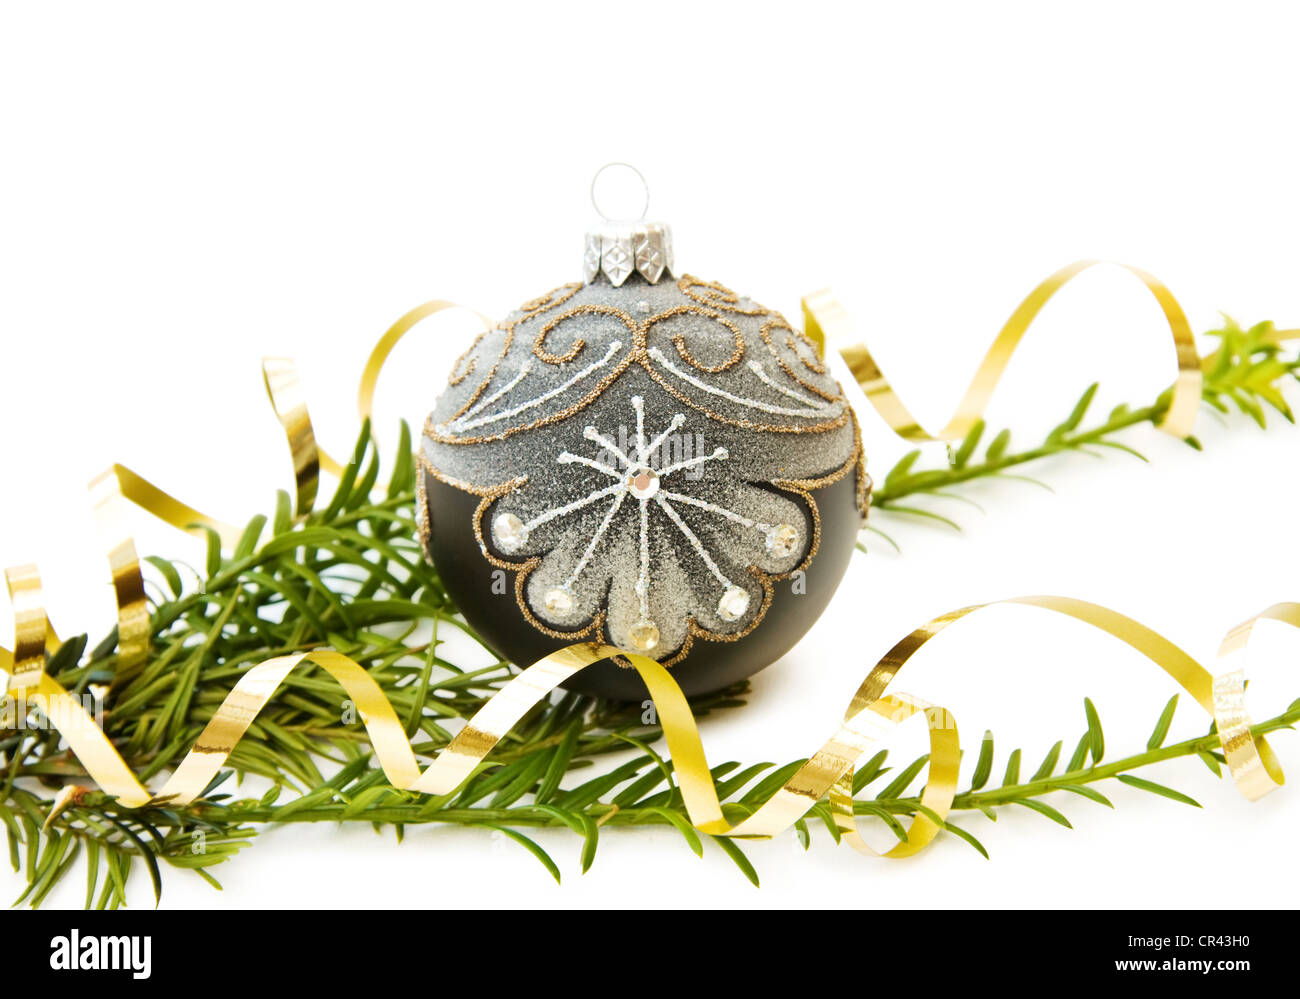 Celebrating Christmas with traditional pine tree branch and silver bauble decoration. Isolated on white. - Stock Image